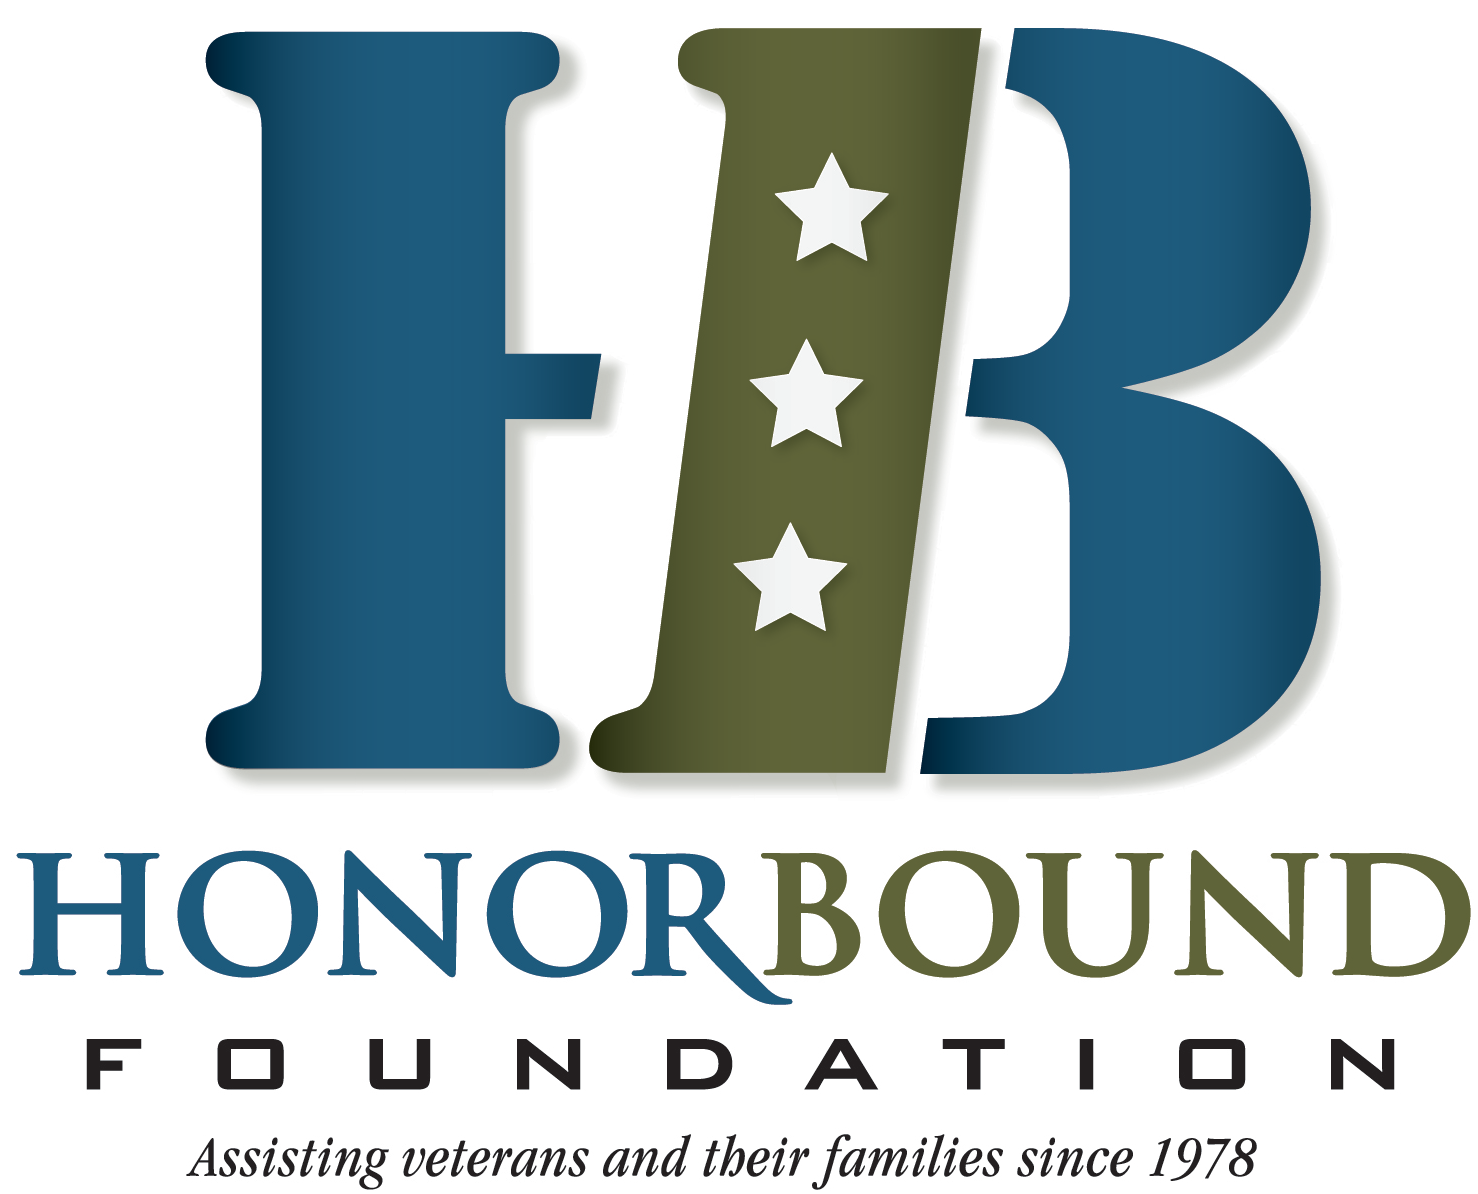 New Mexico Car Donations - HonorBound Foundation - DonatecarUSA.com